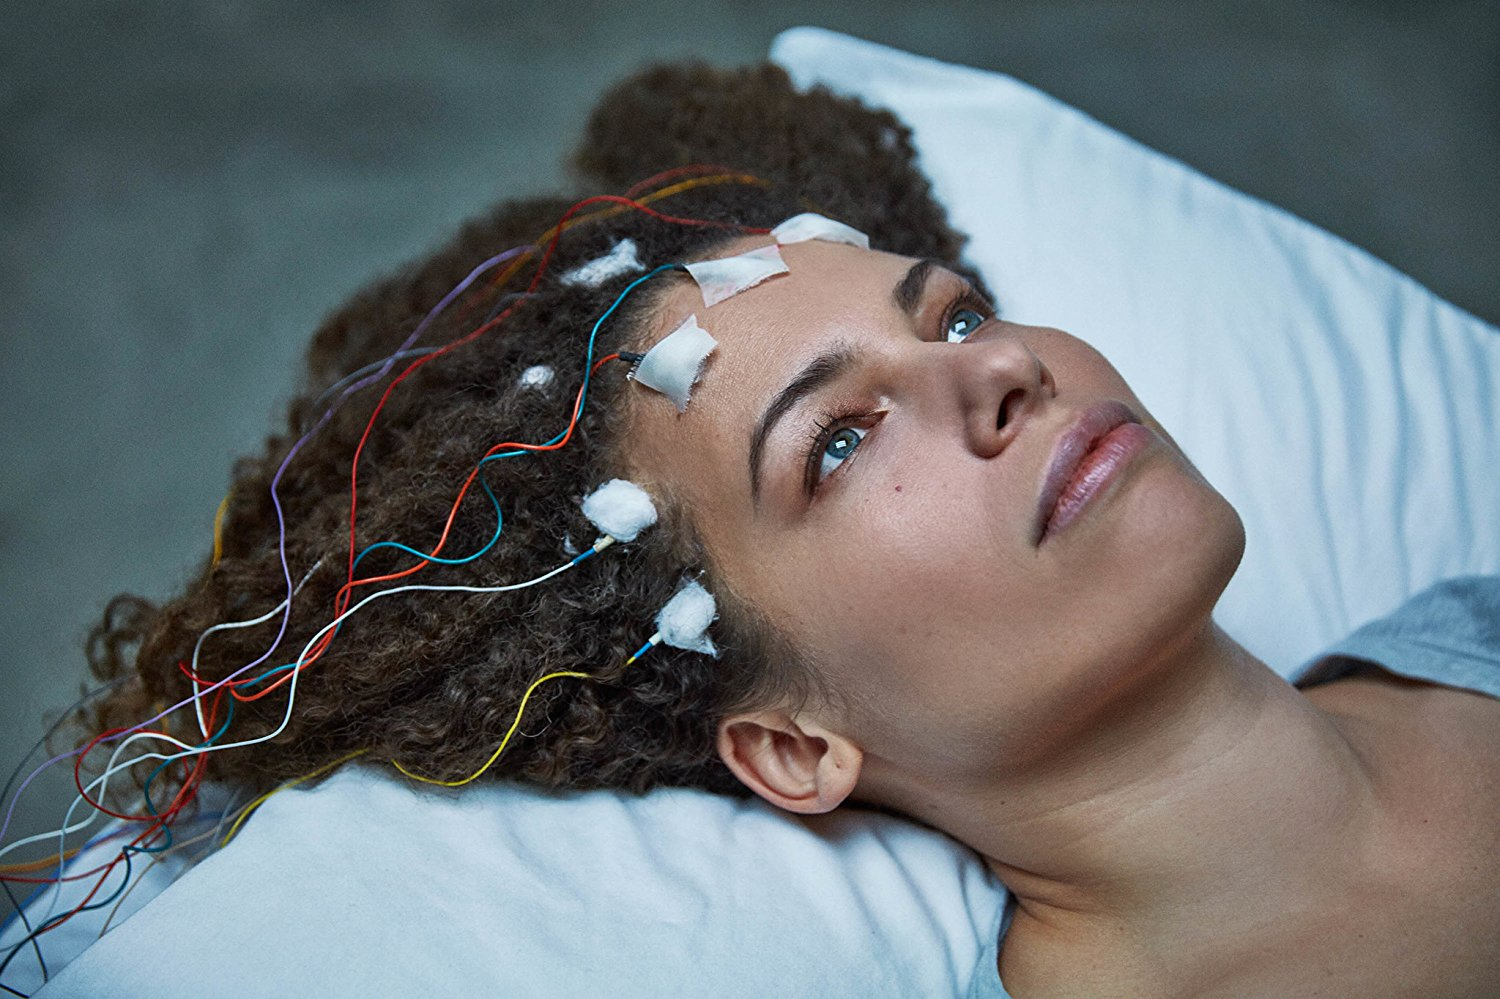 UNREST: A Brave, Personal Look at Invisible Illness